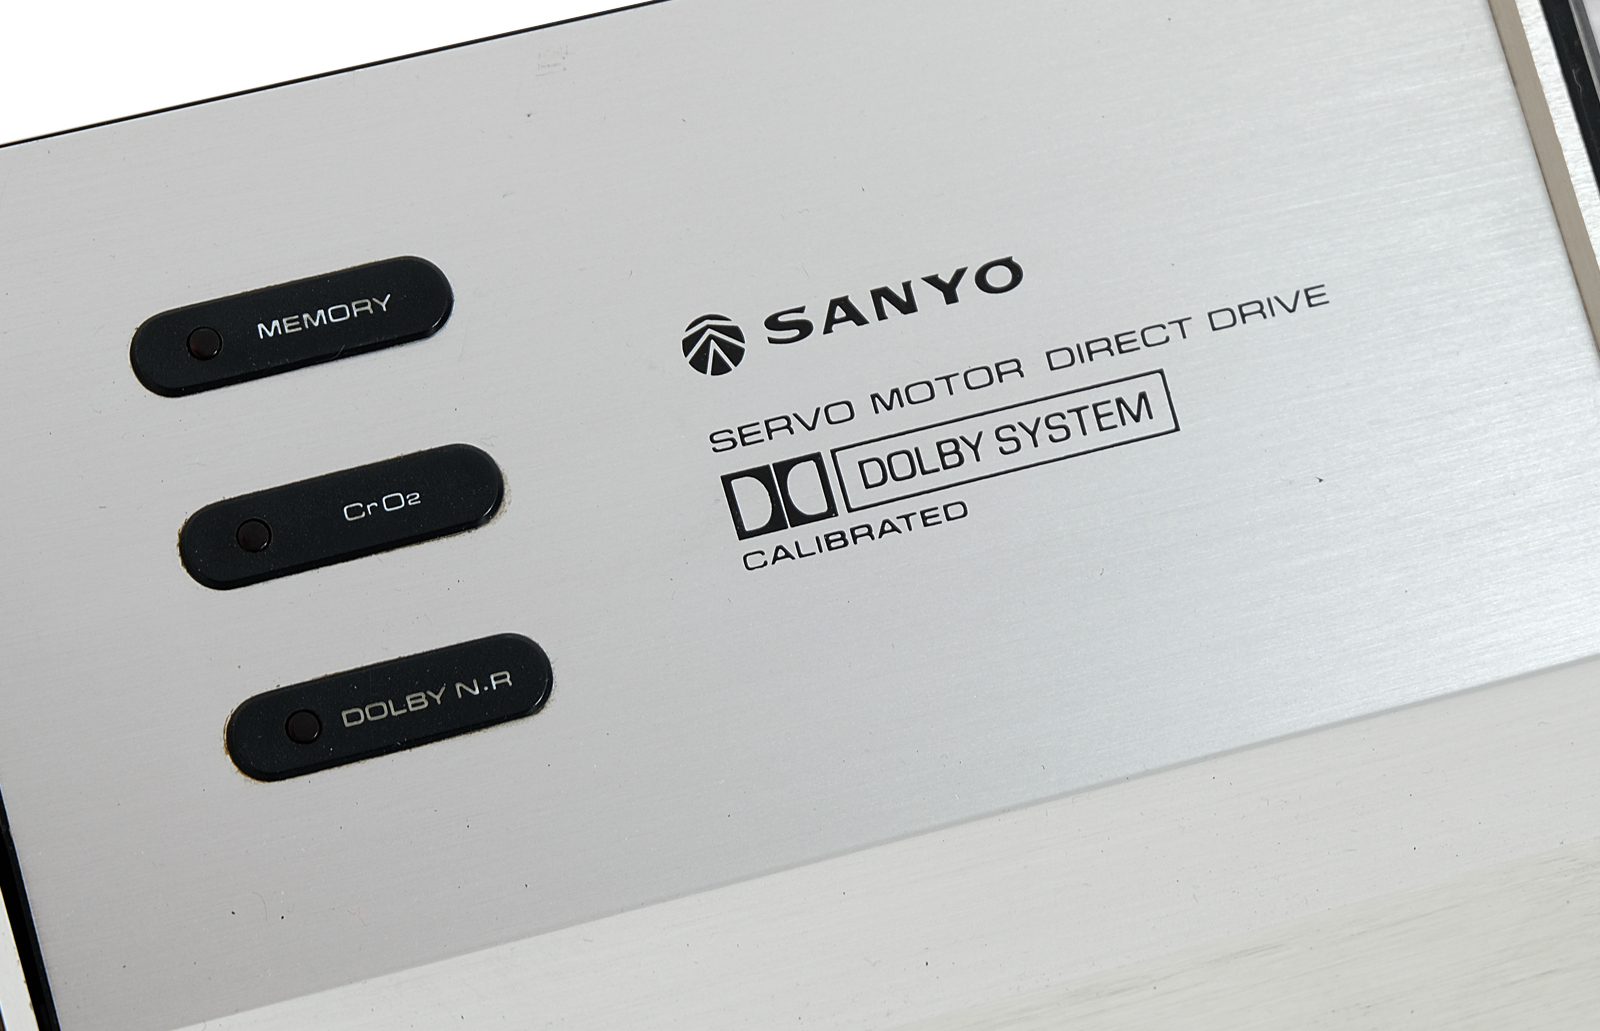 SANYO RD 4600. DOLBY SYSTEM.